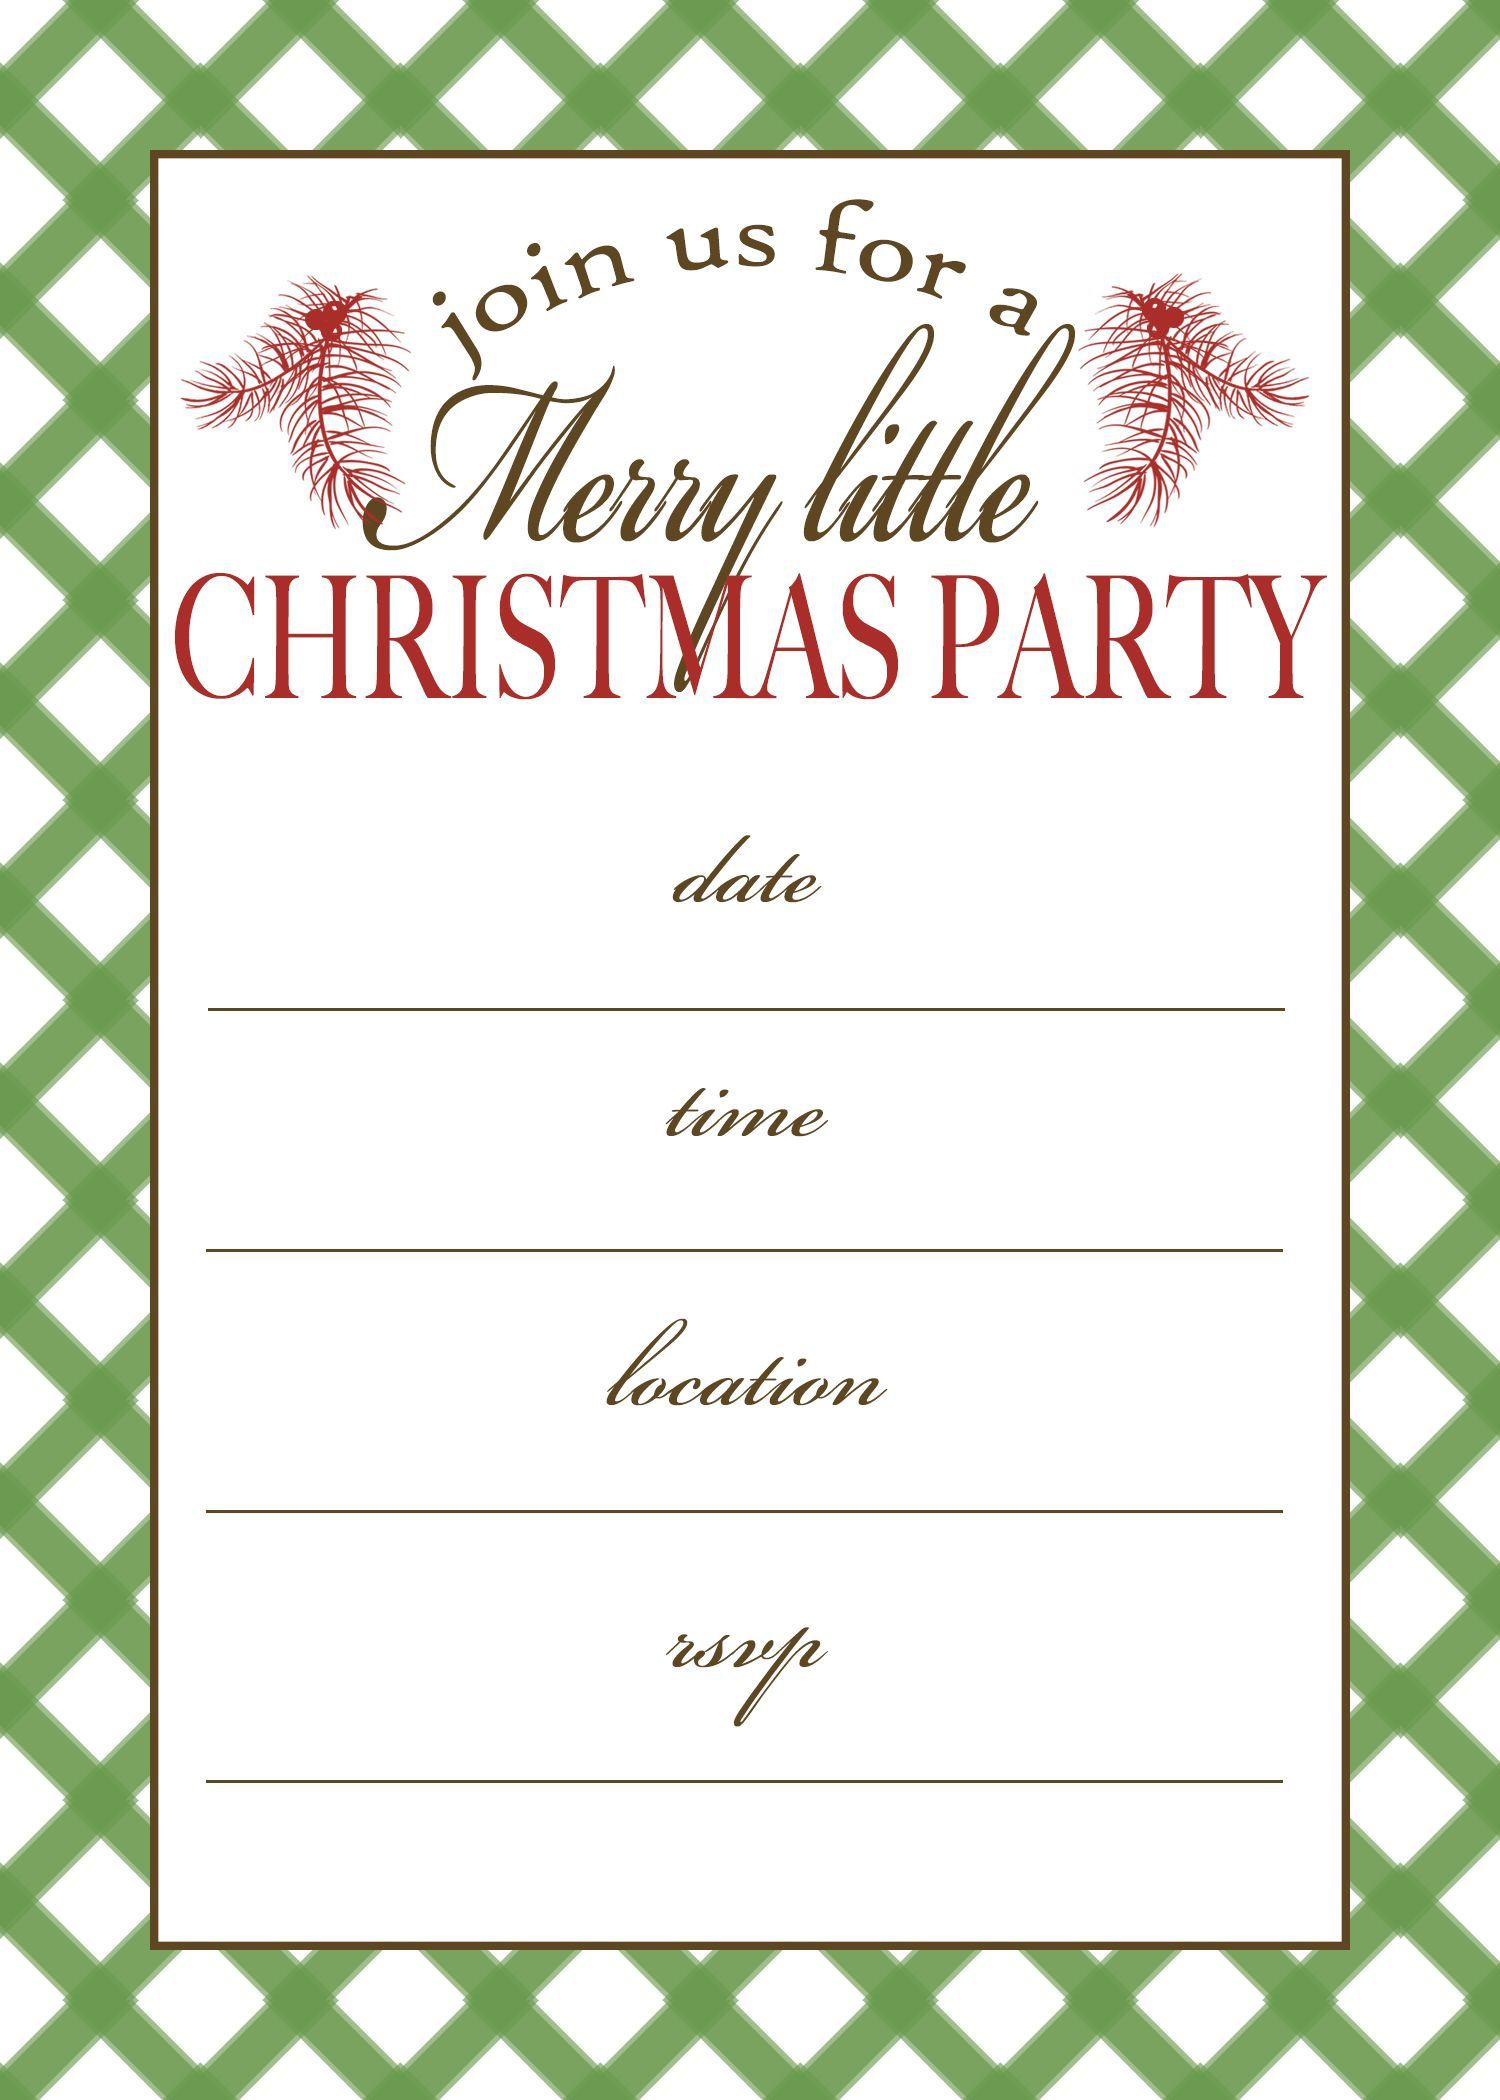 002 Fascinating Free Holiday Party Invitation Template For Word Photo Full